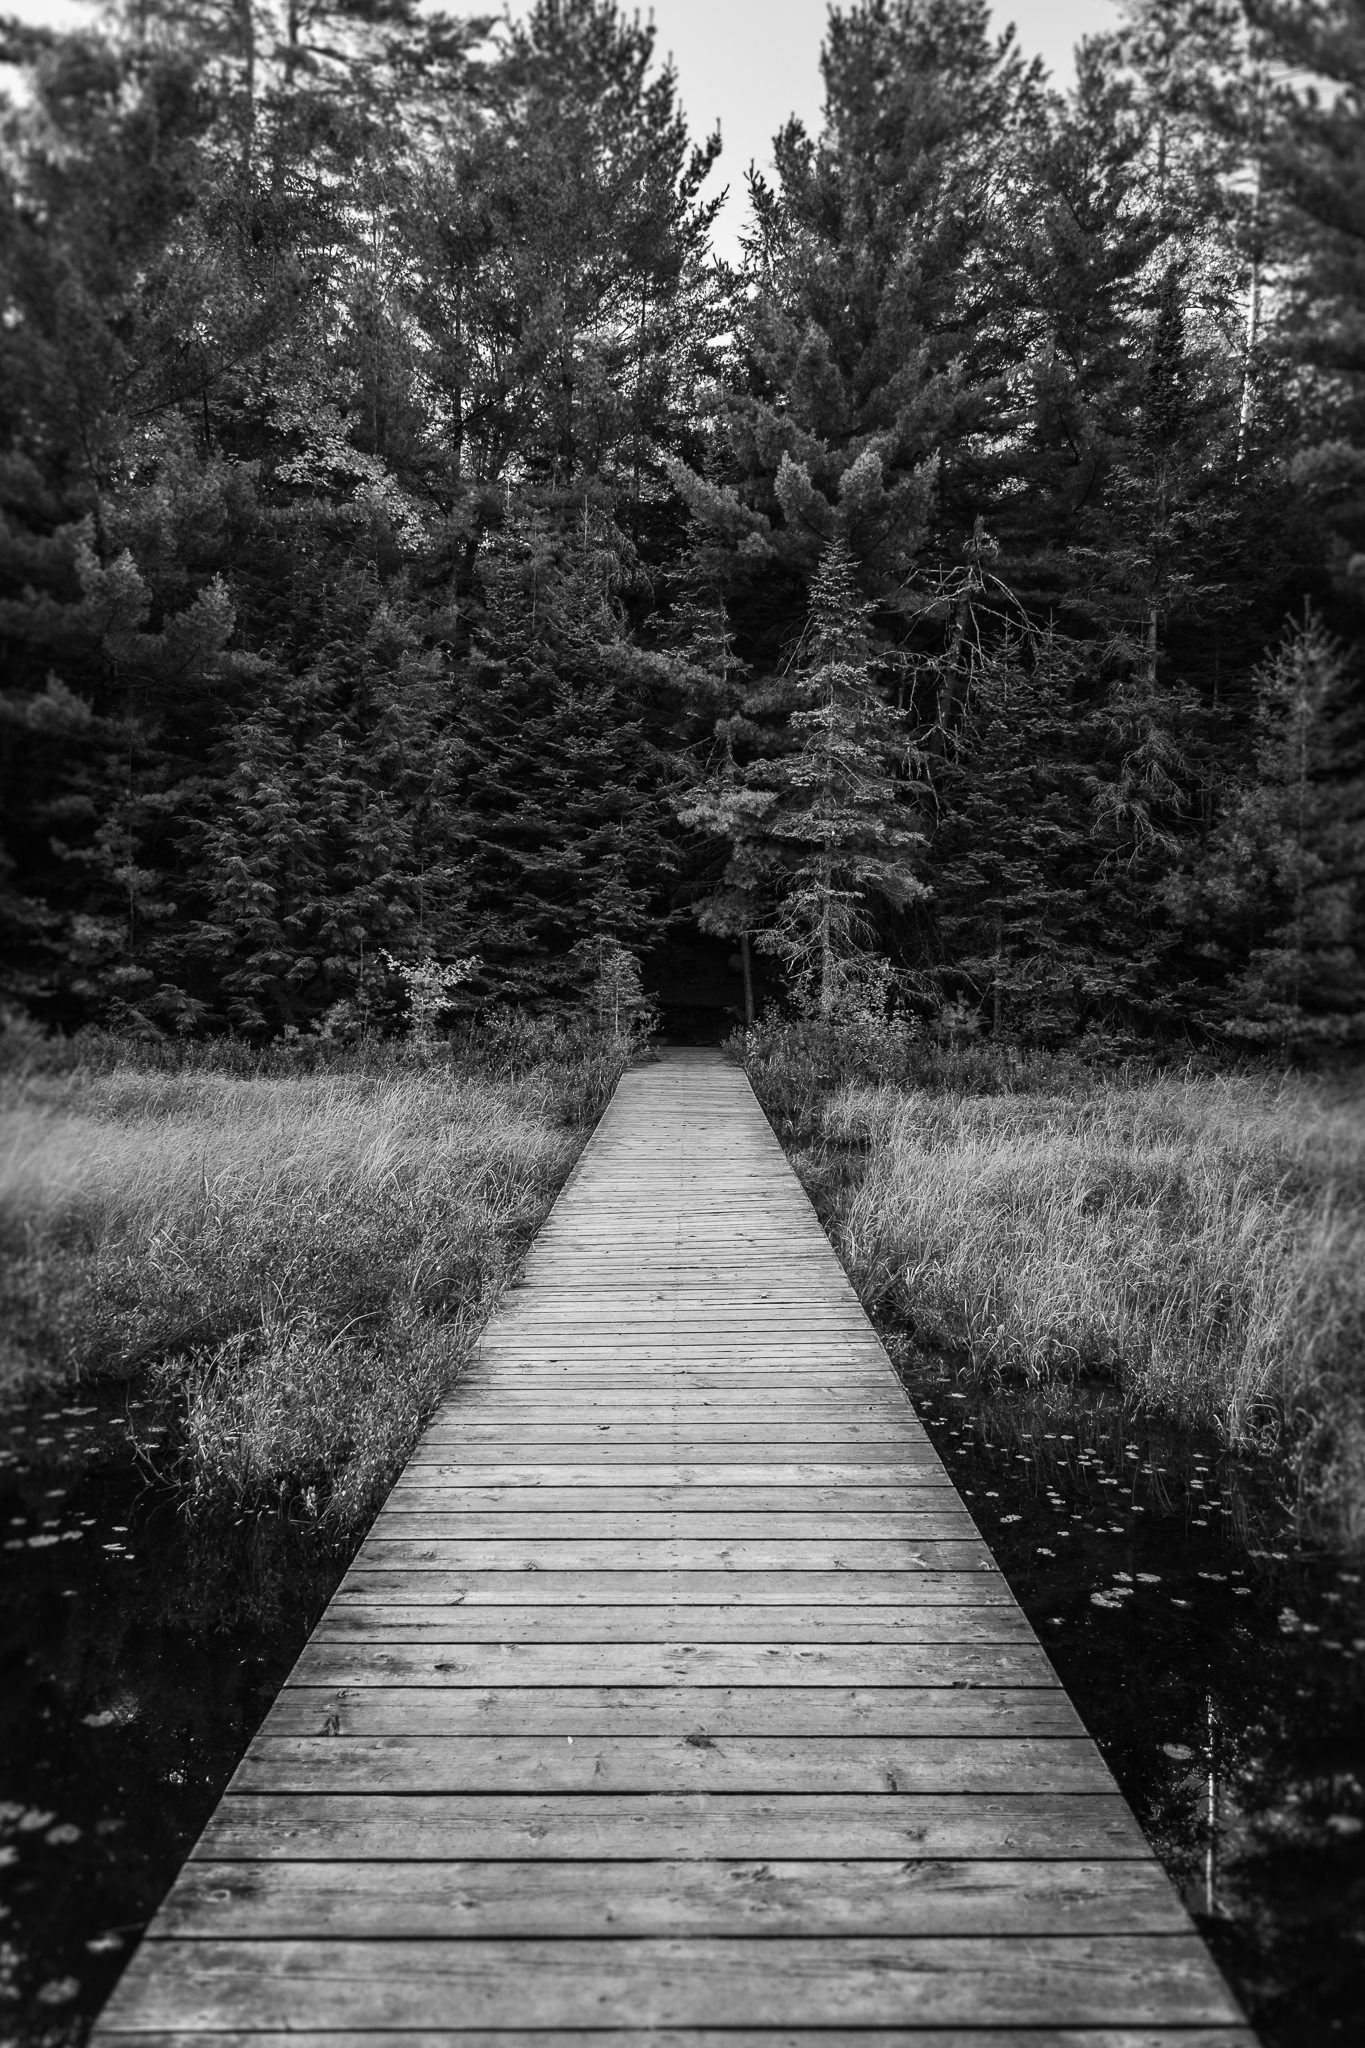 Boardwalk on Peck Lake (1/40s, f/4, ISO400)